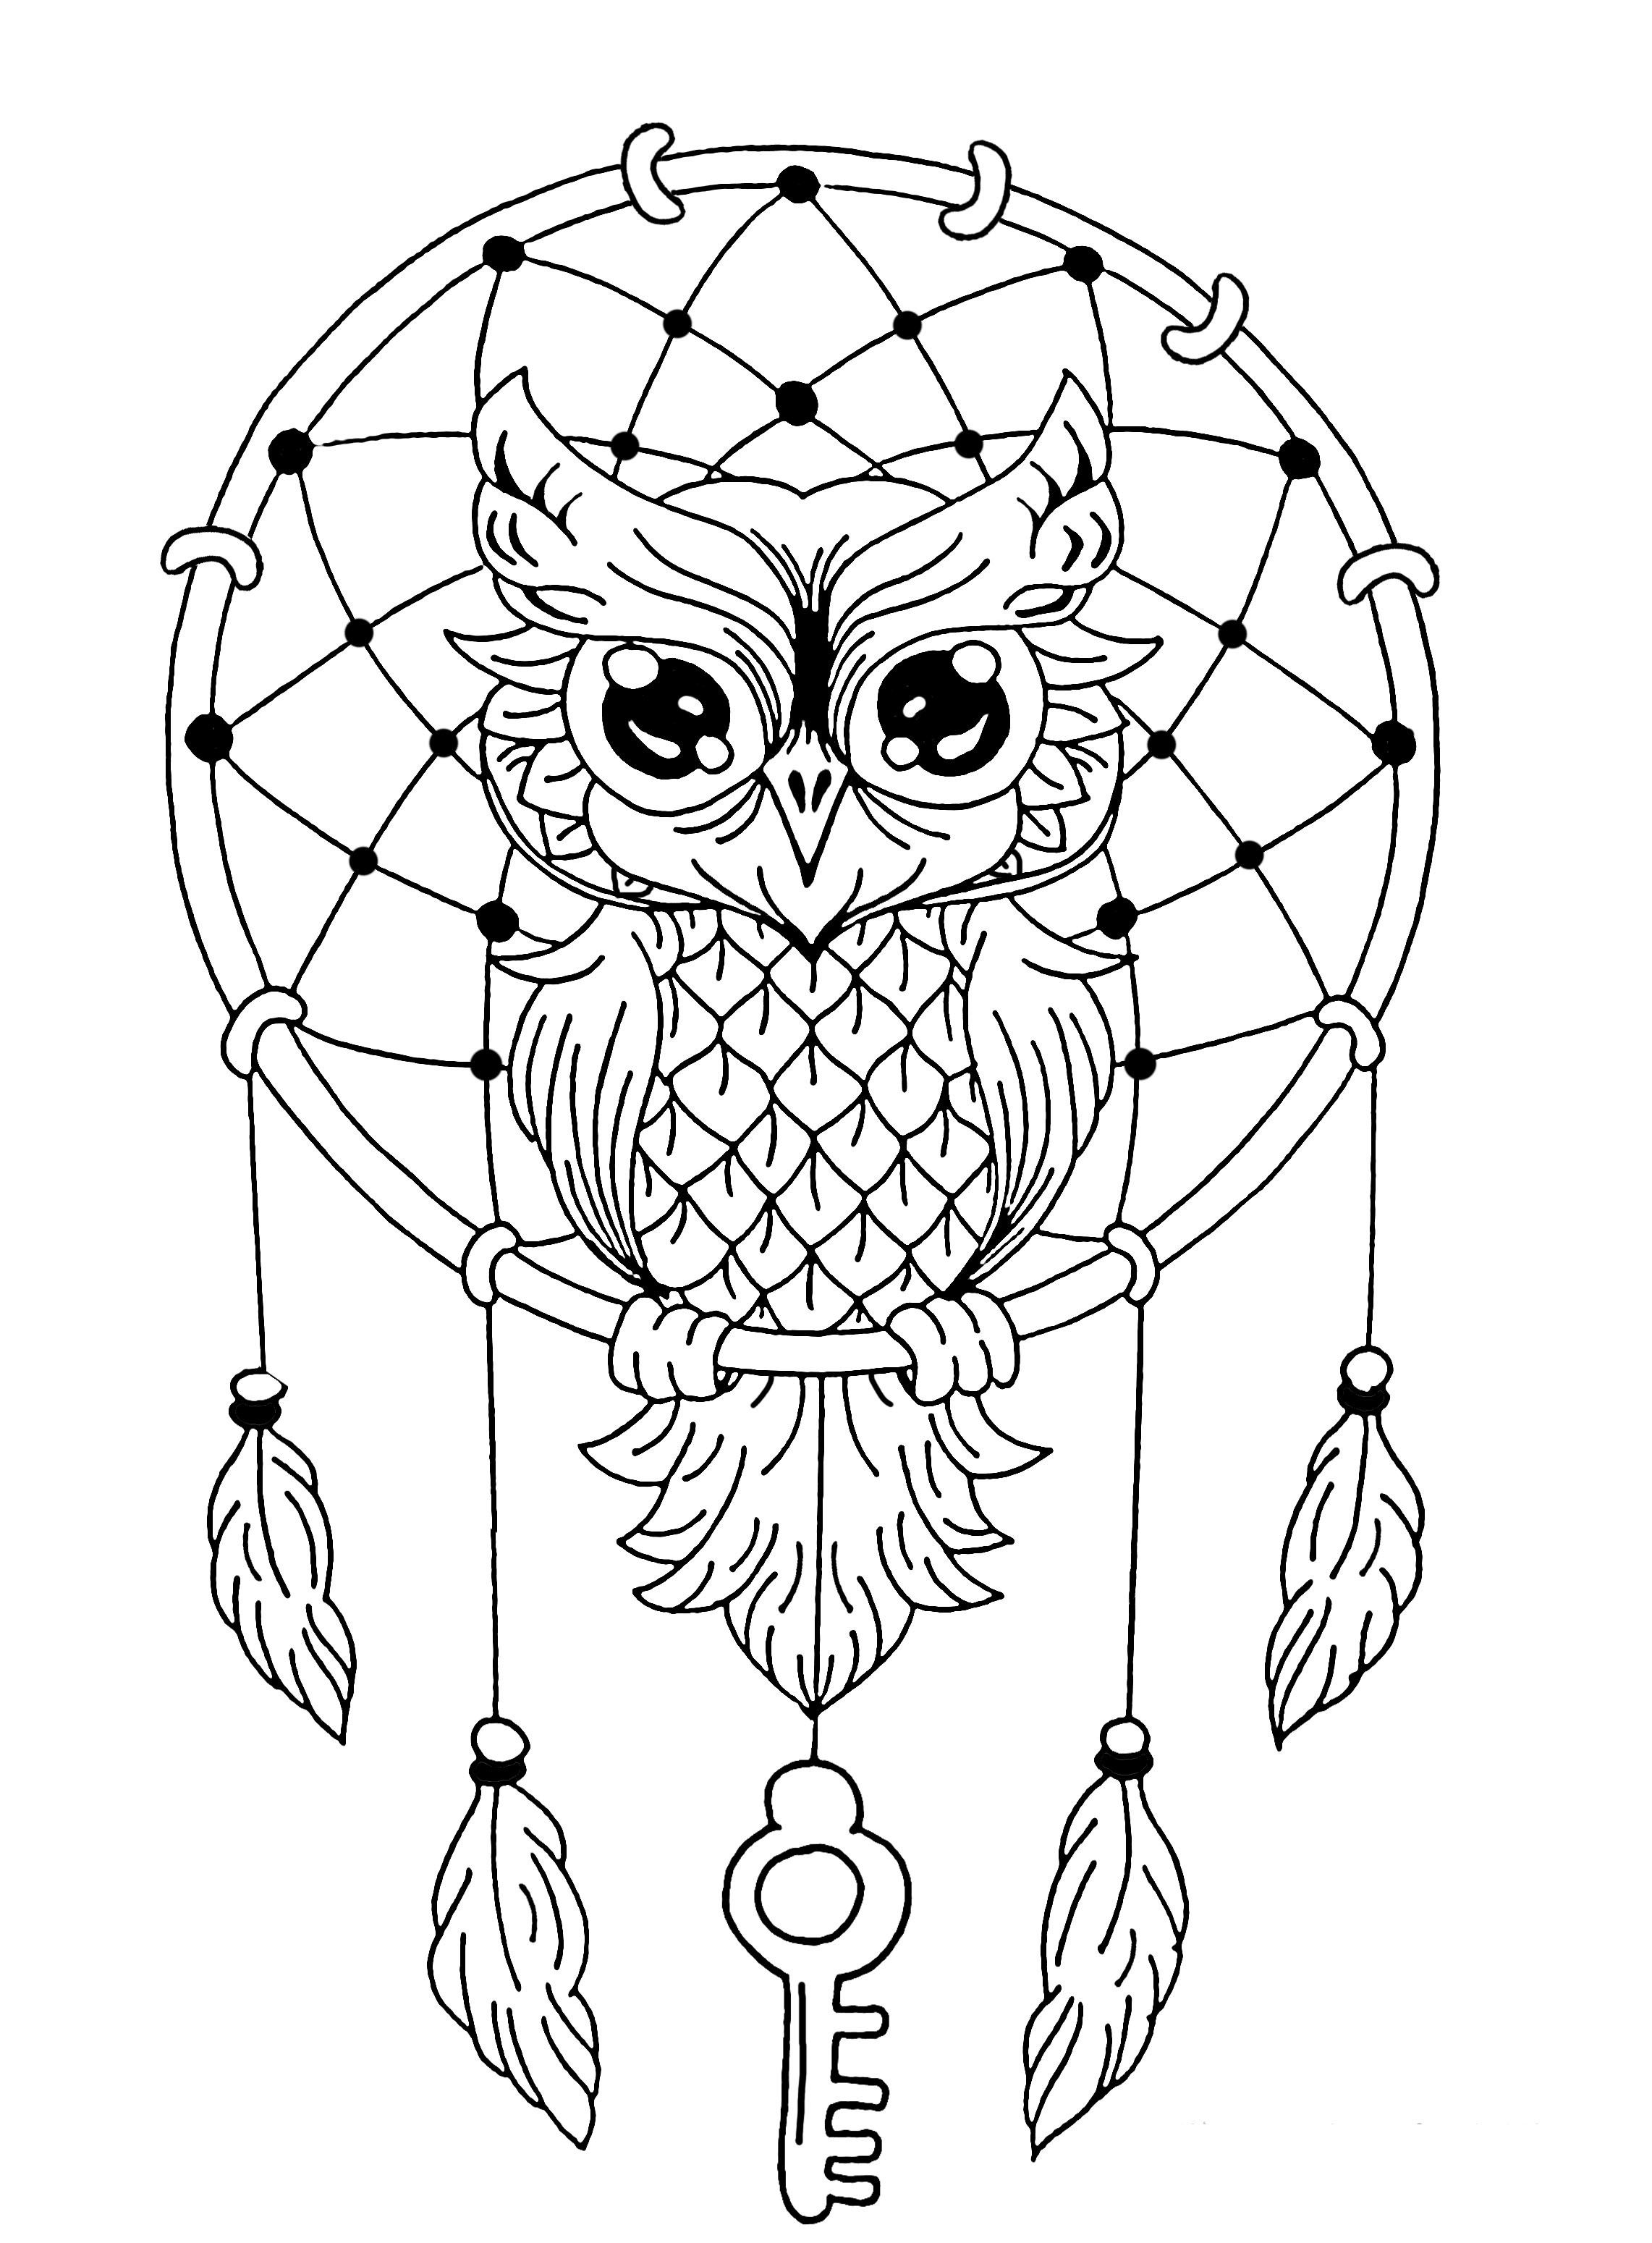 29 Last Concept Coloring Mandala Owl Snowball Coloring Pages